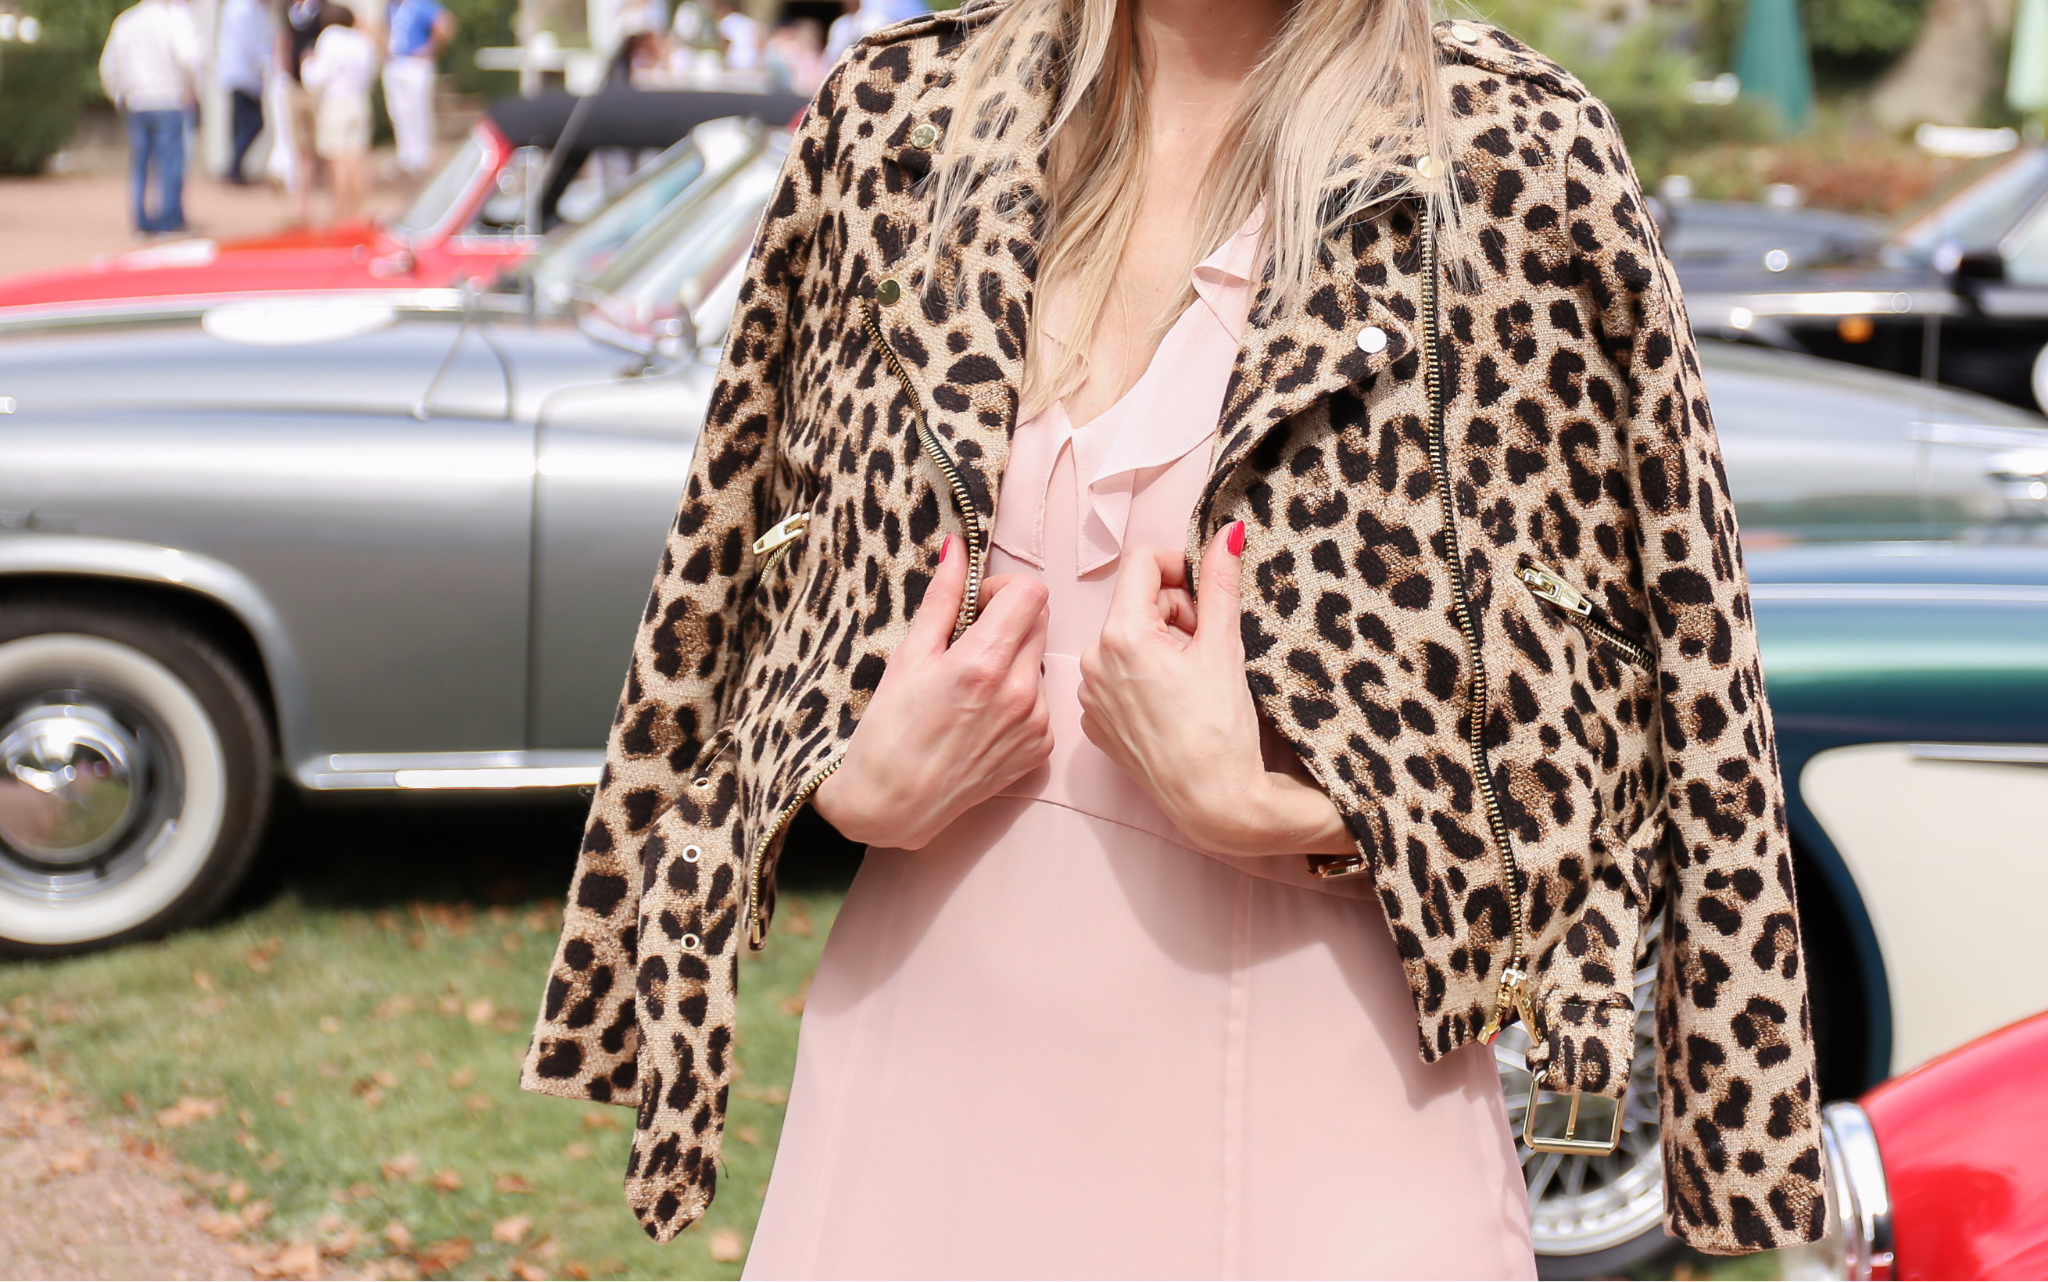 MOD-by-Monique-Fashion-Looks-Leopard-Print-Pink-Maxi-Dress-18-1